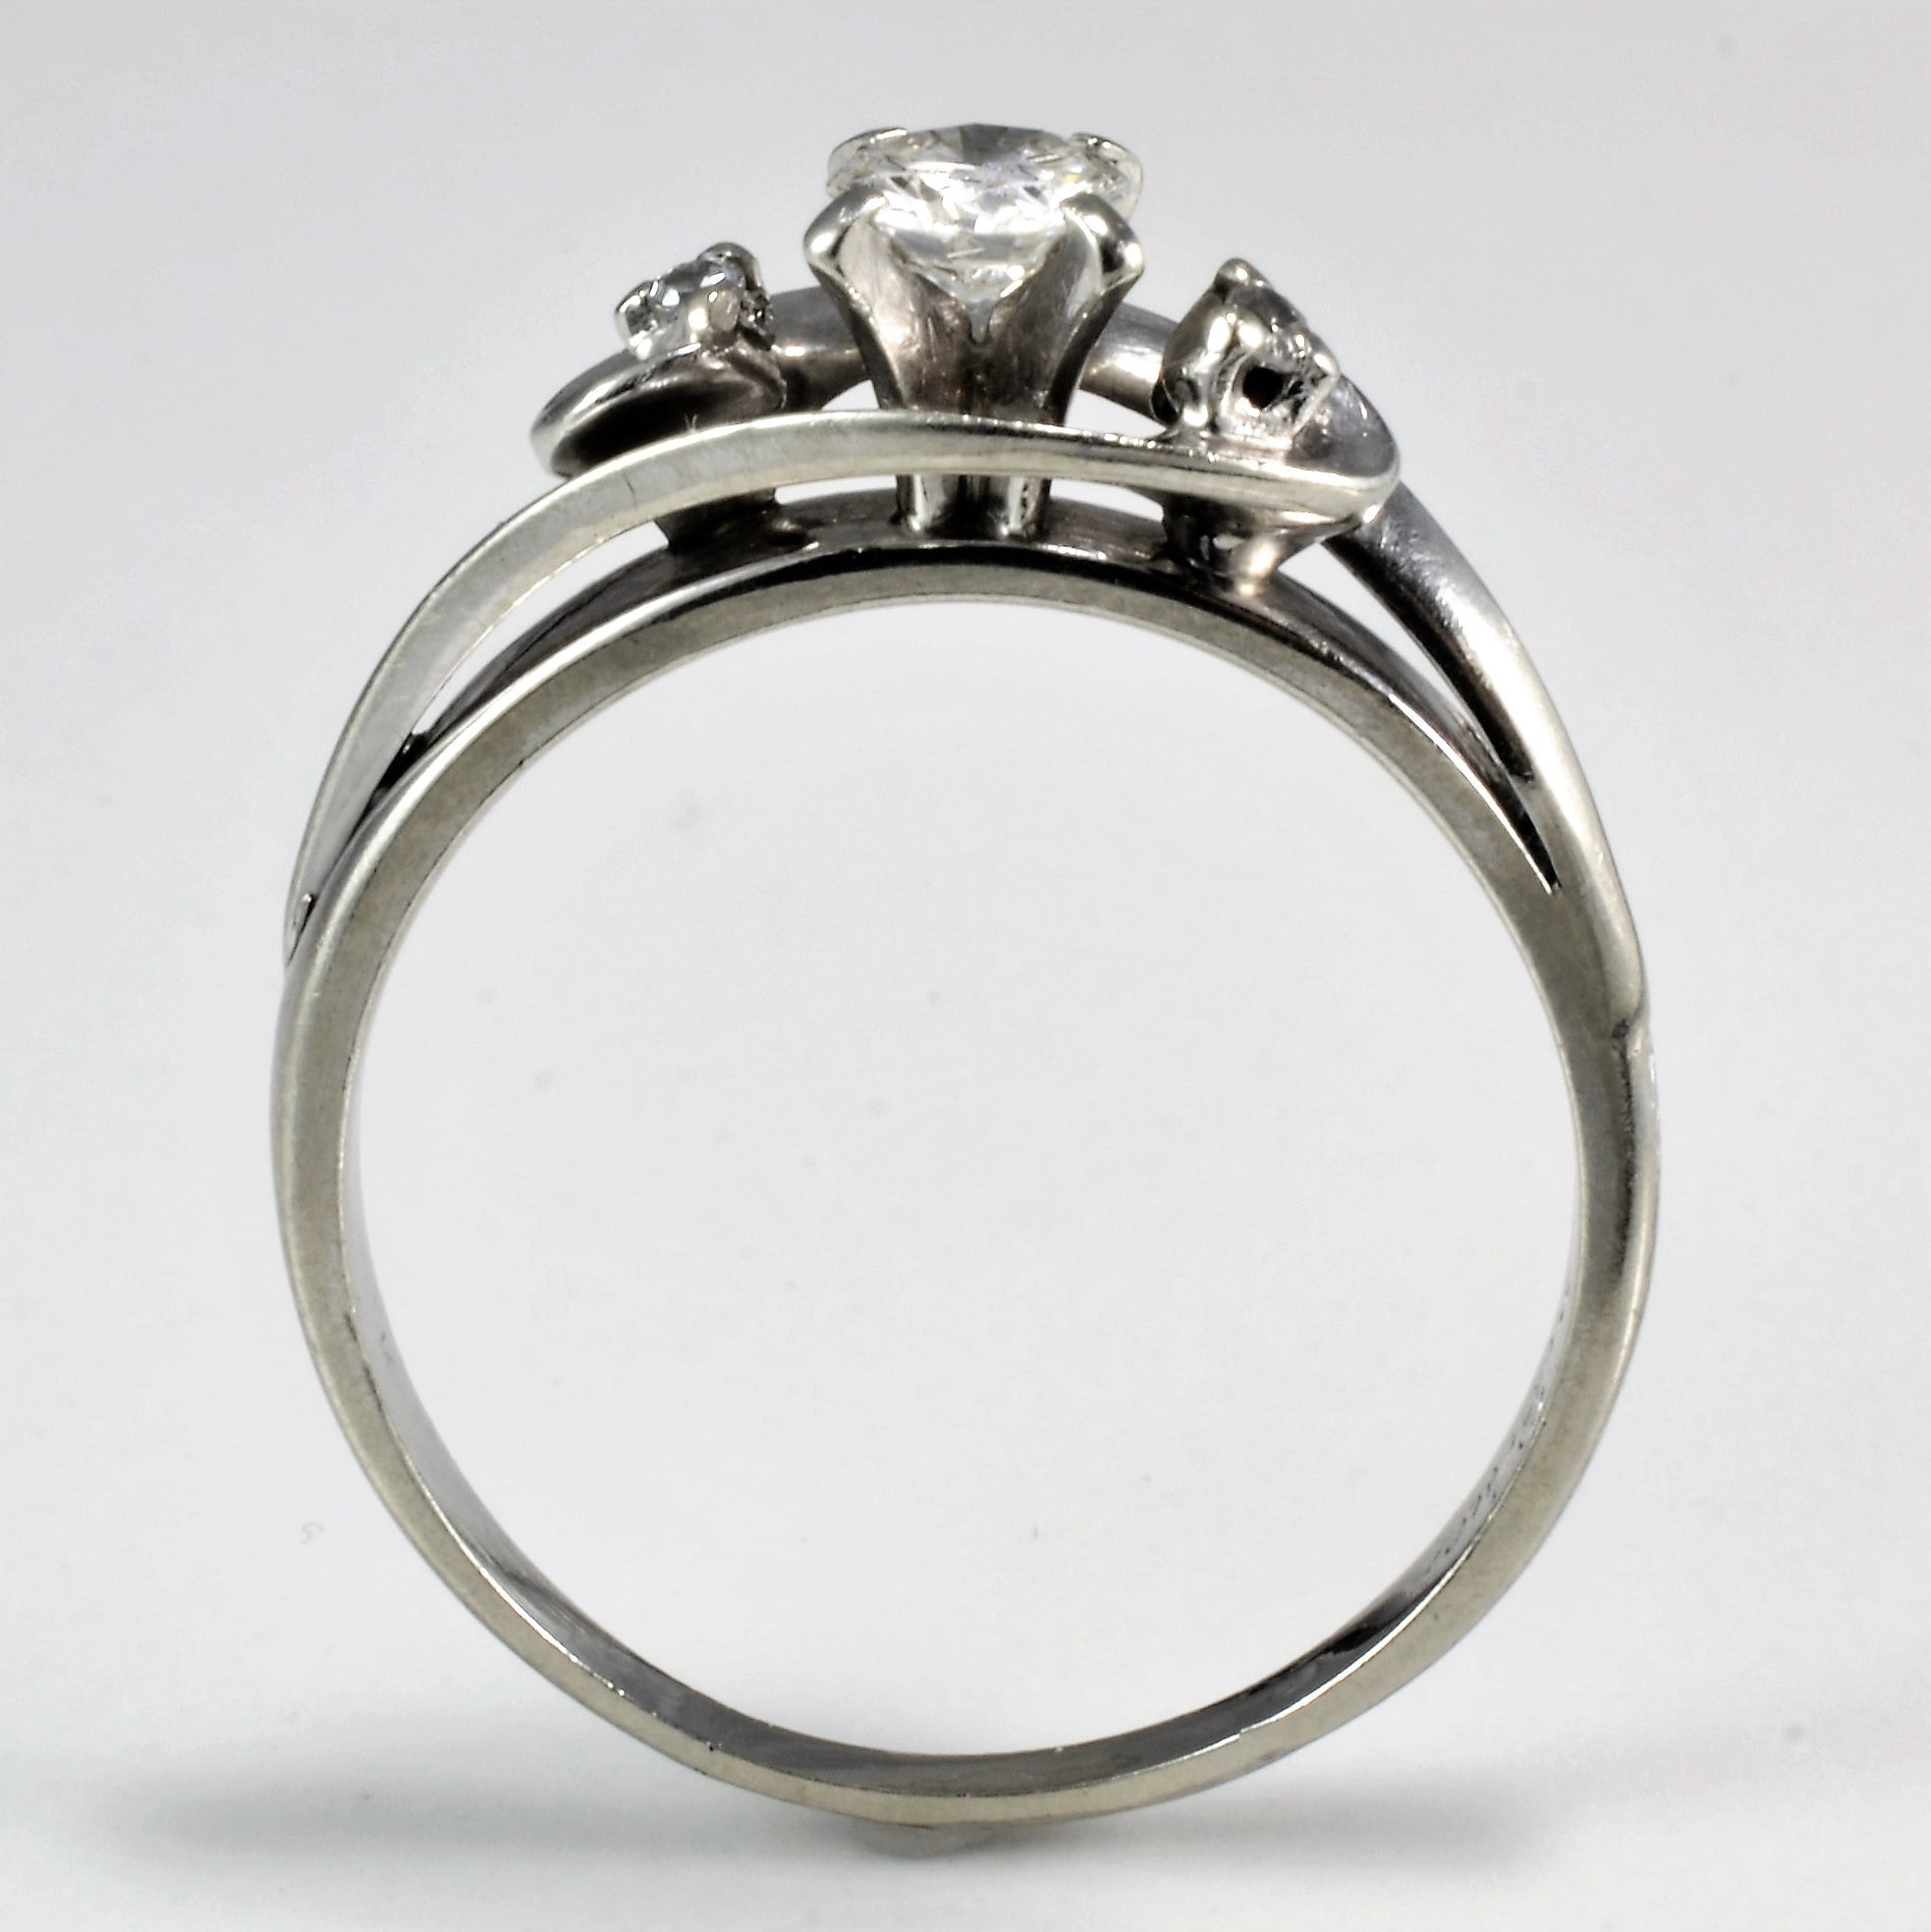 Bypass High Set Diamond Promise Ring | 0.28 ctw, SZ 7.5 |